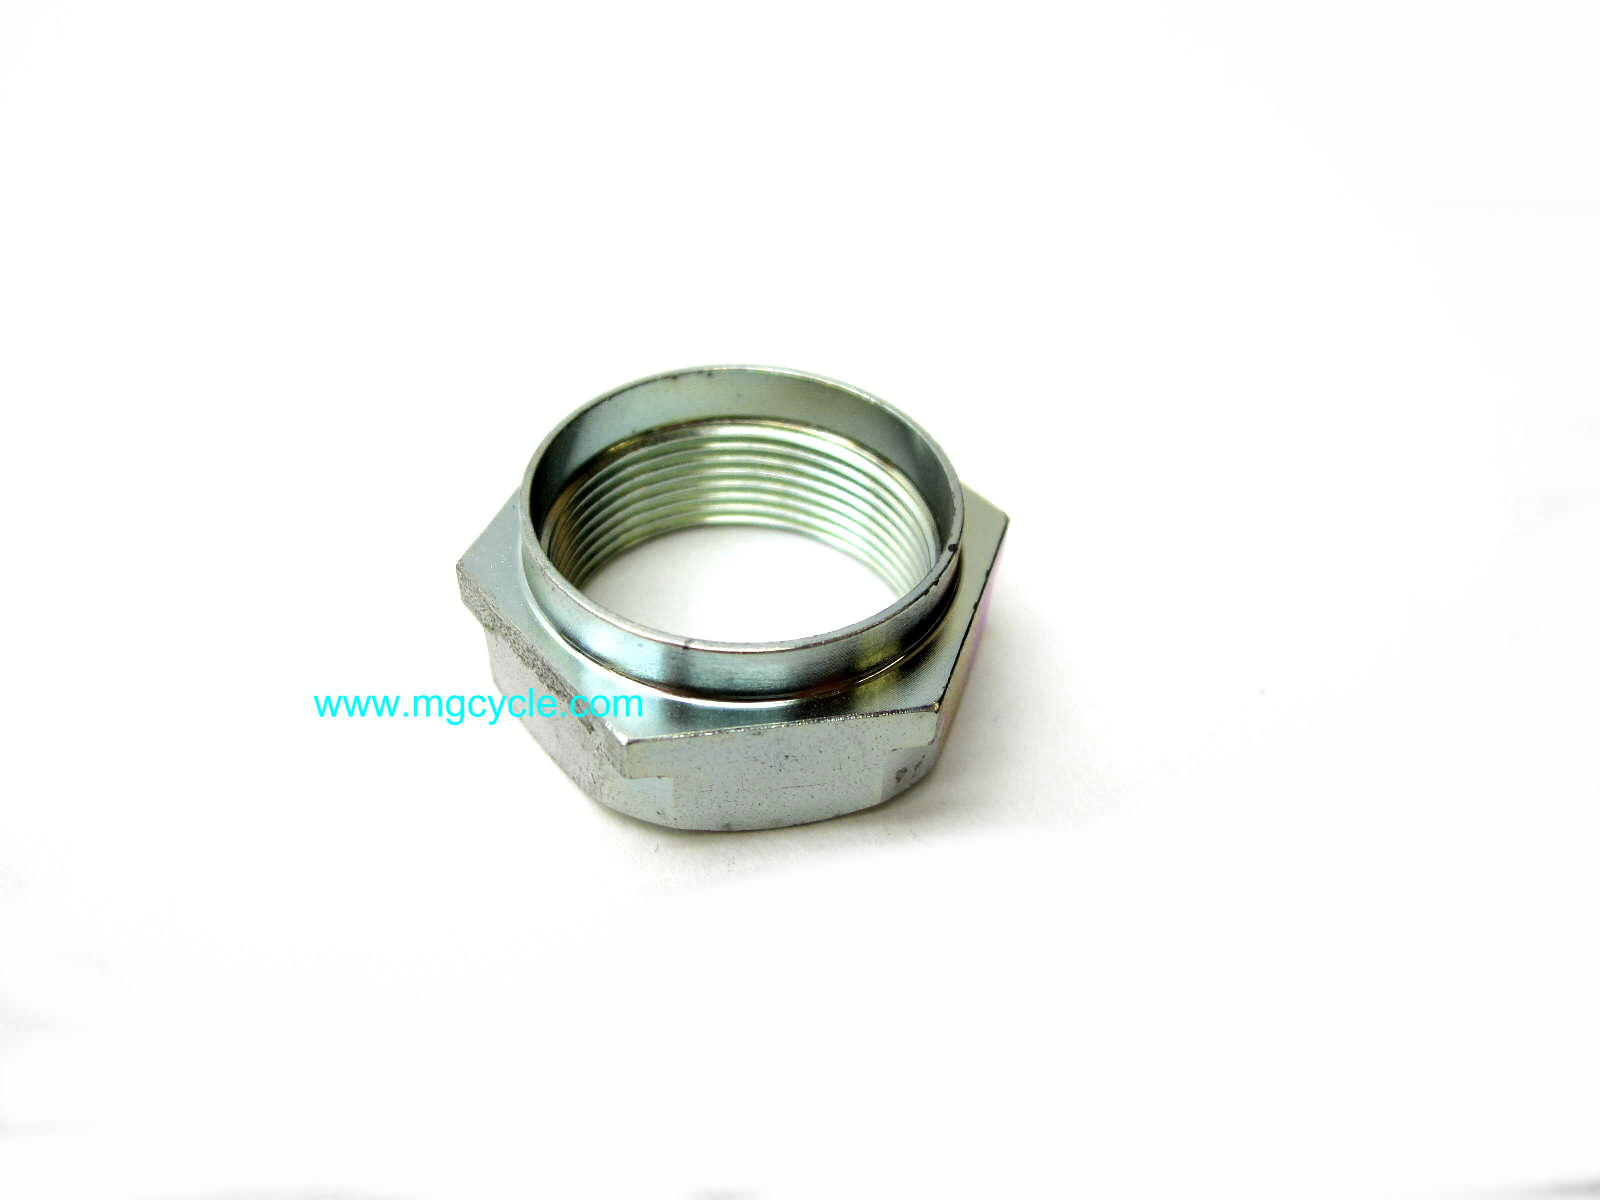 Output shaft securing nut, also can be used on input shaft